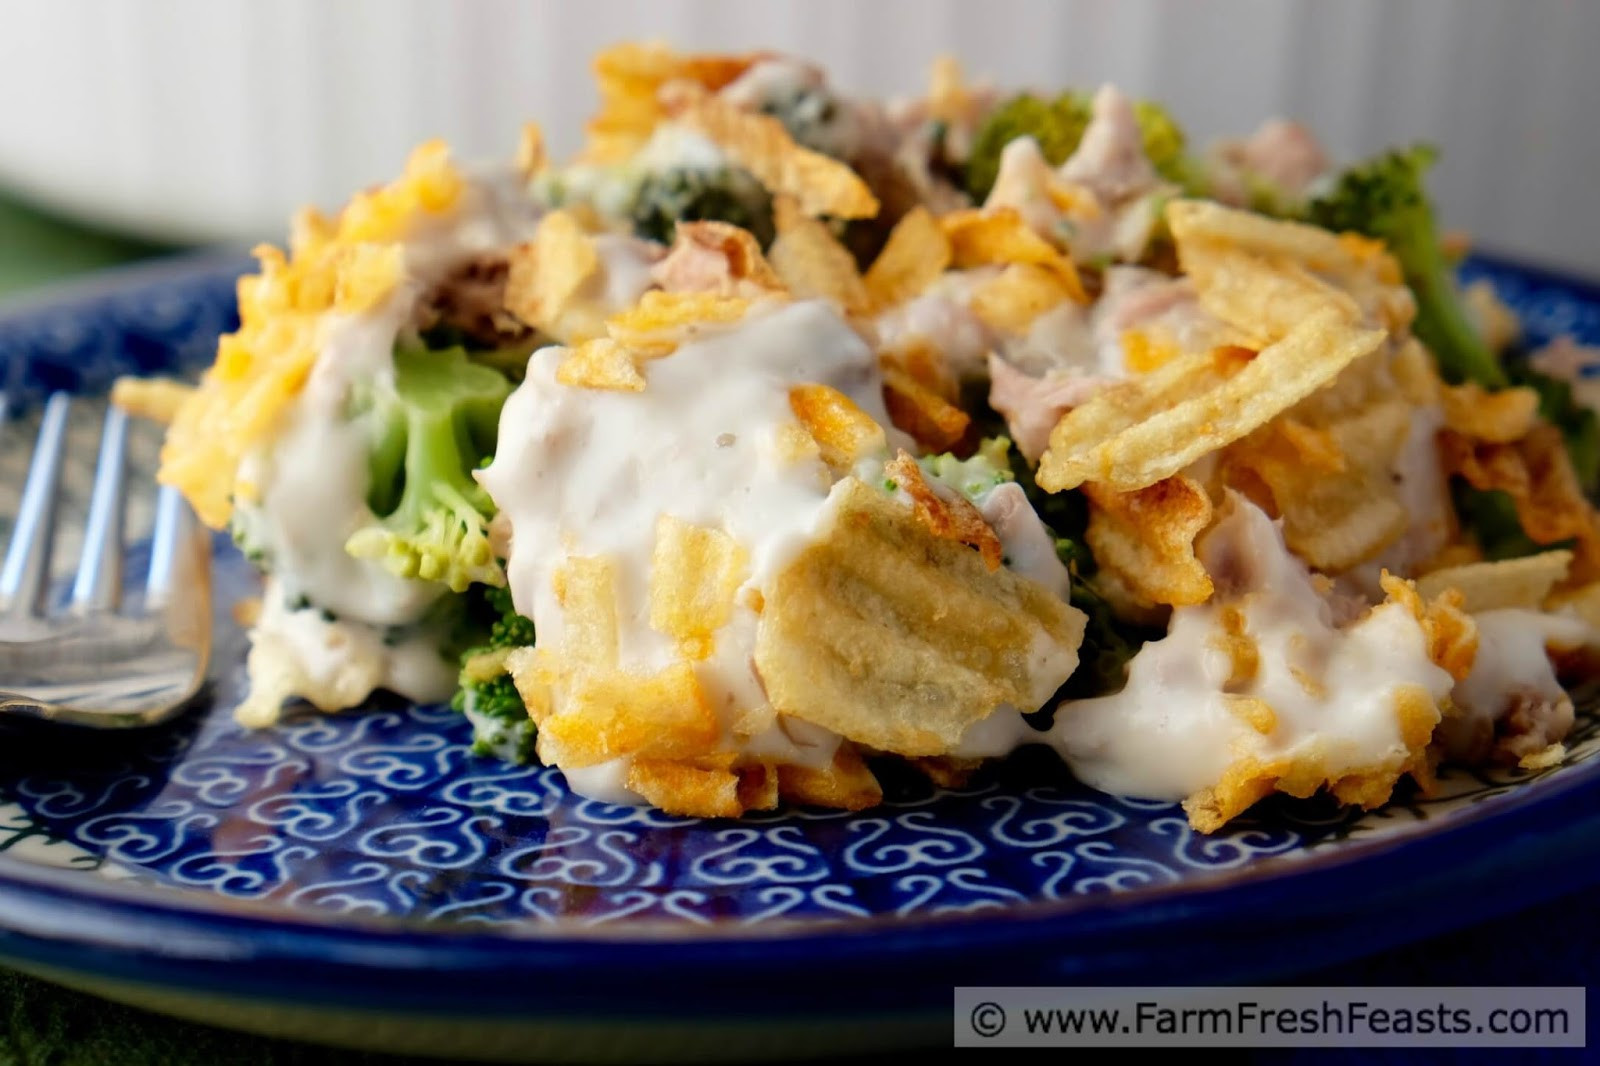 Tuna Casserole With Potato Chips  Farm Fresh Feasts Tuna Broccoli Casserole with Potato